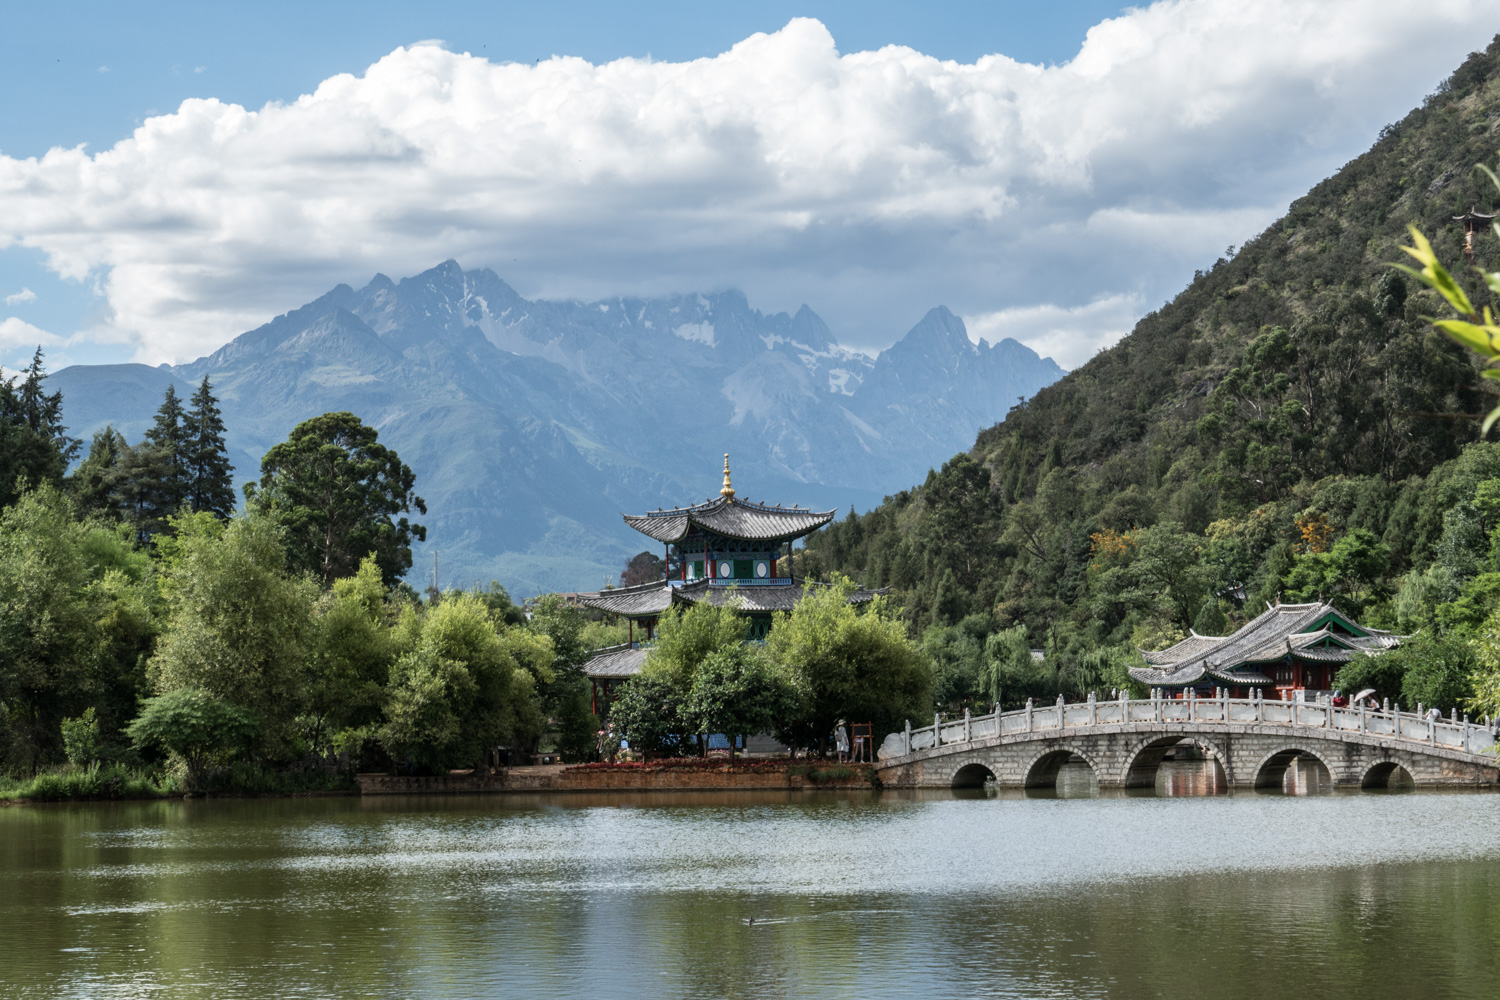 View from Jade Spring Park of Black Dragon Pool with Jade Dragon Snow Mountain in the background